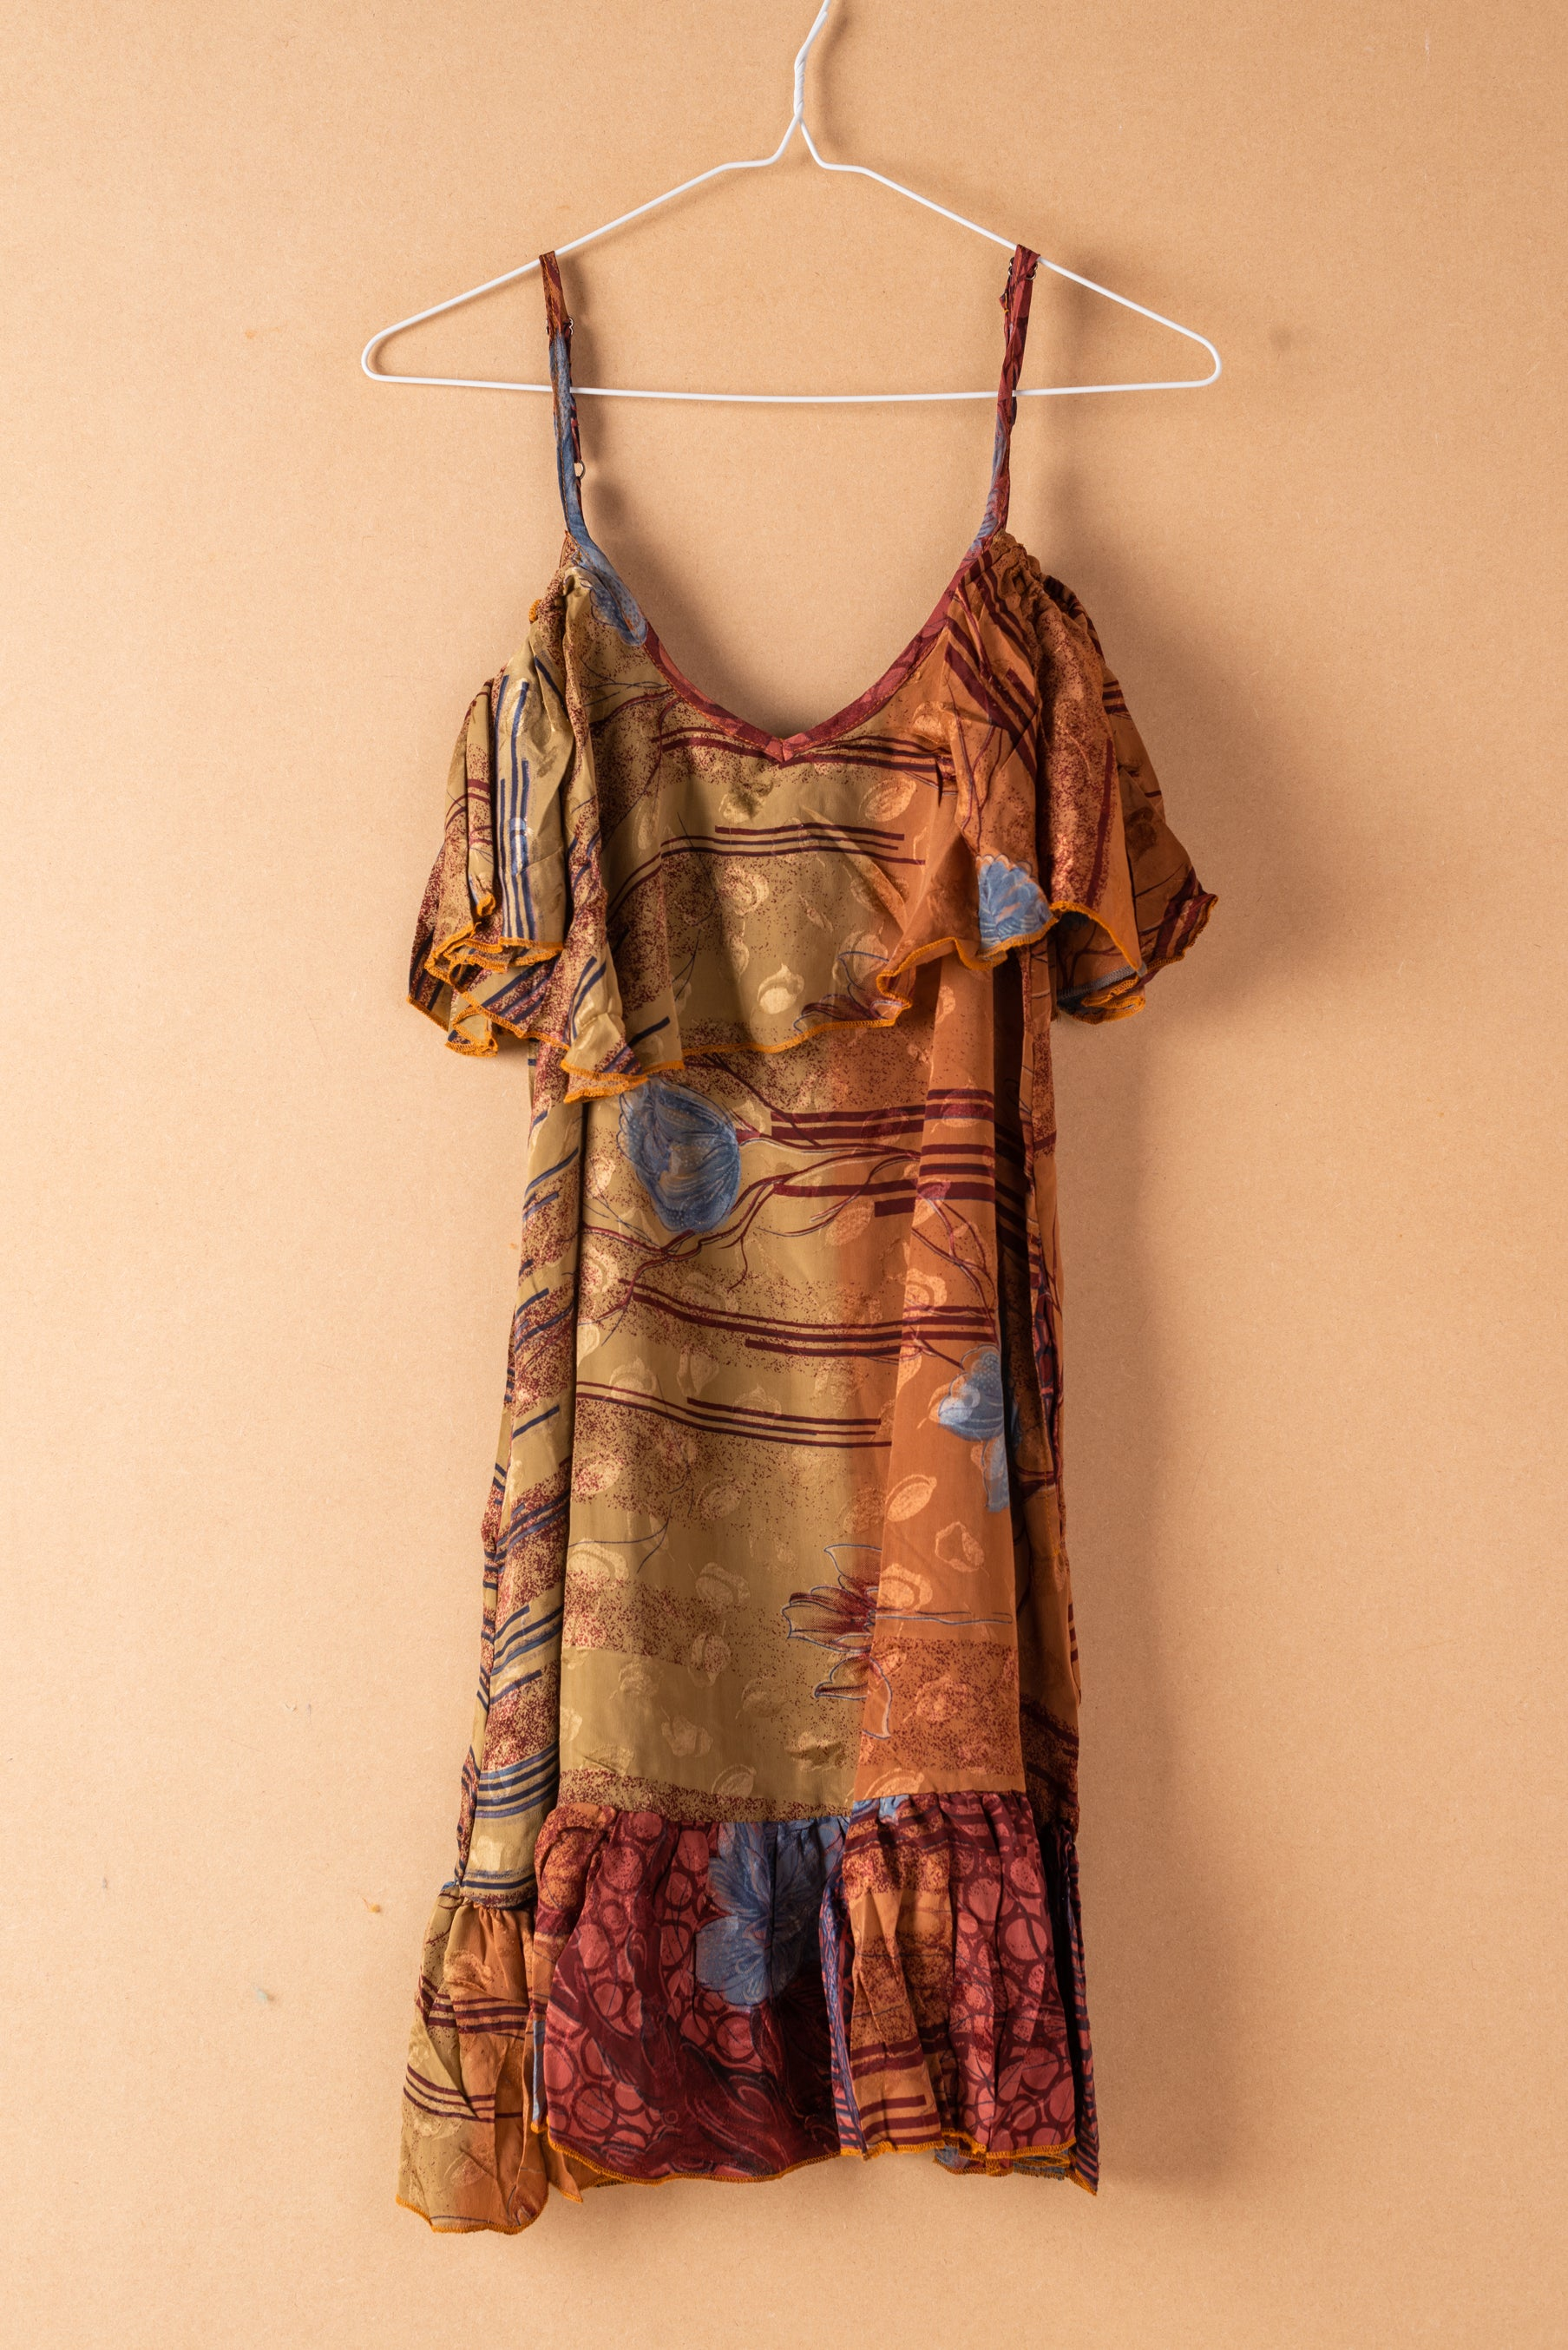 Recycled Silk Short Sleeveless Dress - small - 07